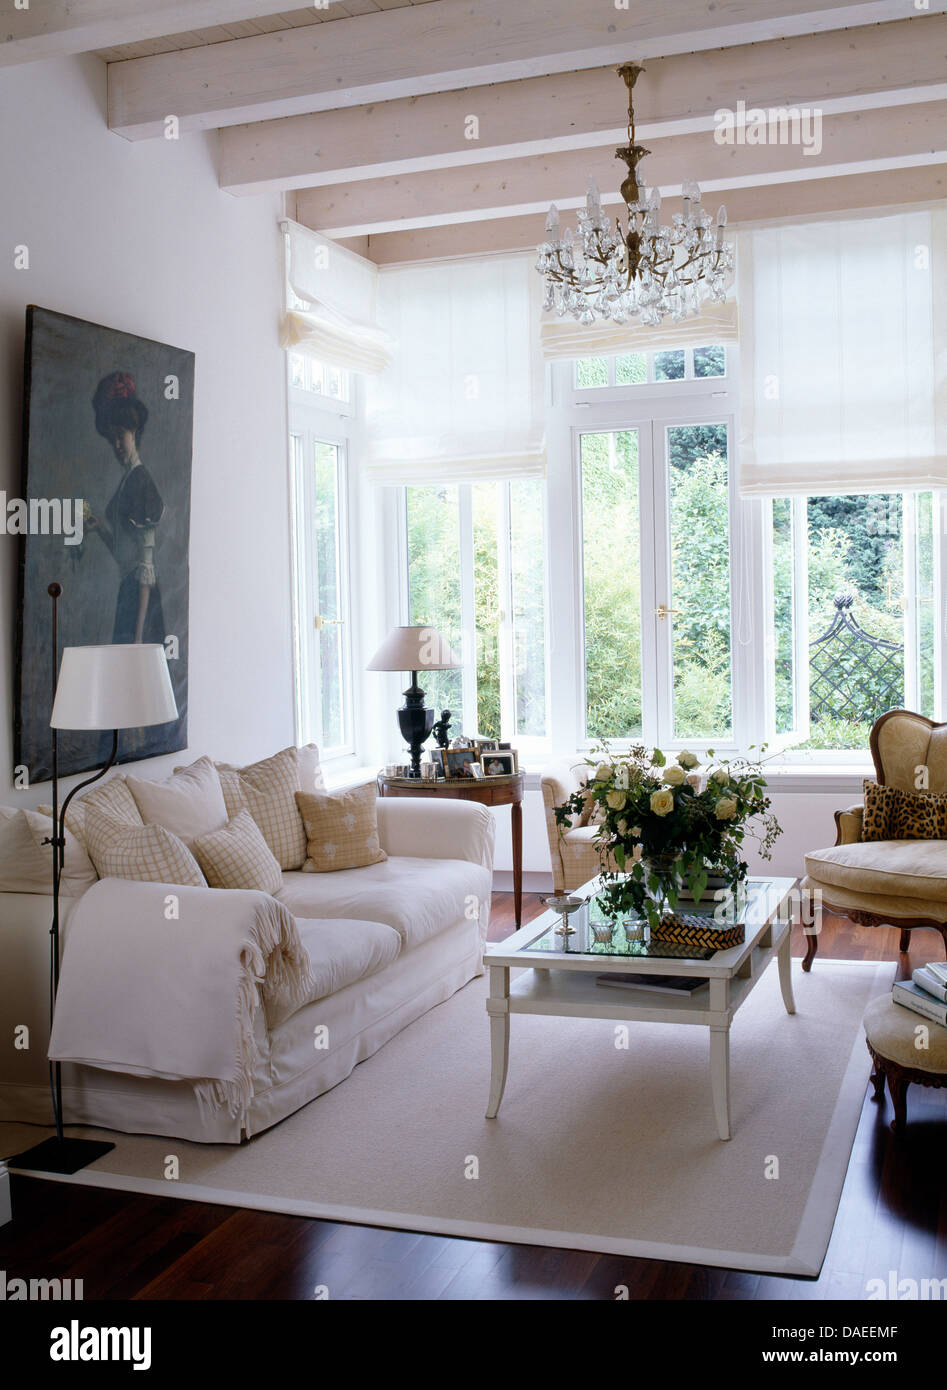 White Country Living Room Decorating Ideas: Coffee Table On White Rug In Front Of White Sofa In